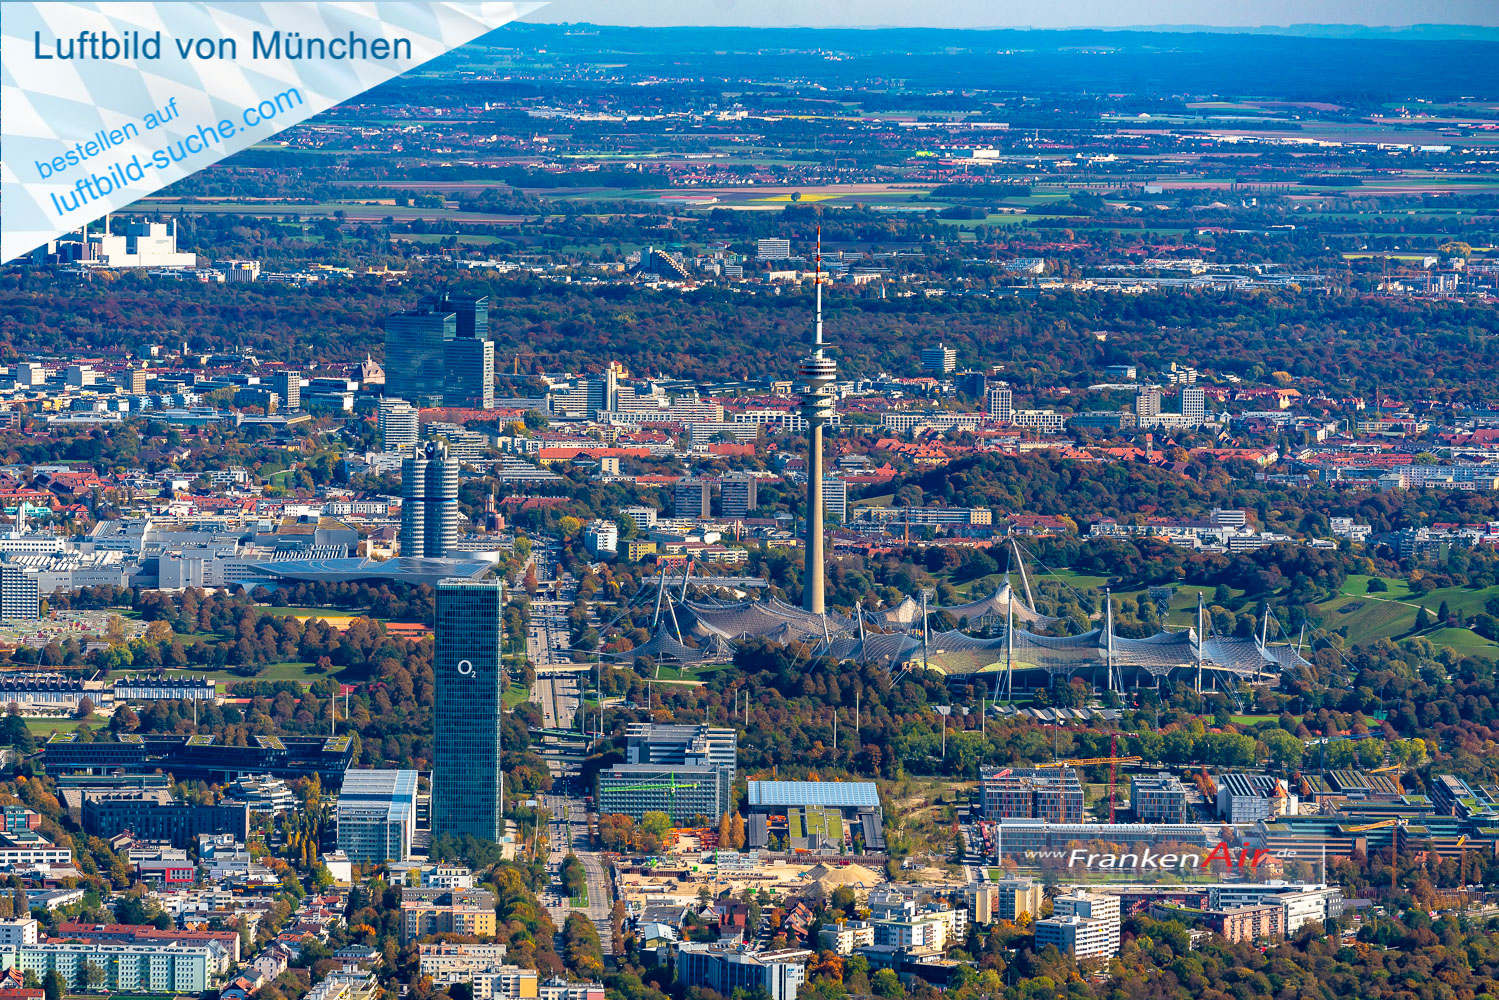 Georg-brauchle-ring-muenchen-18-08